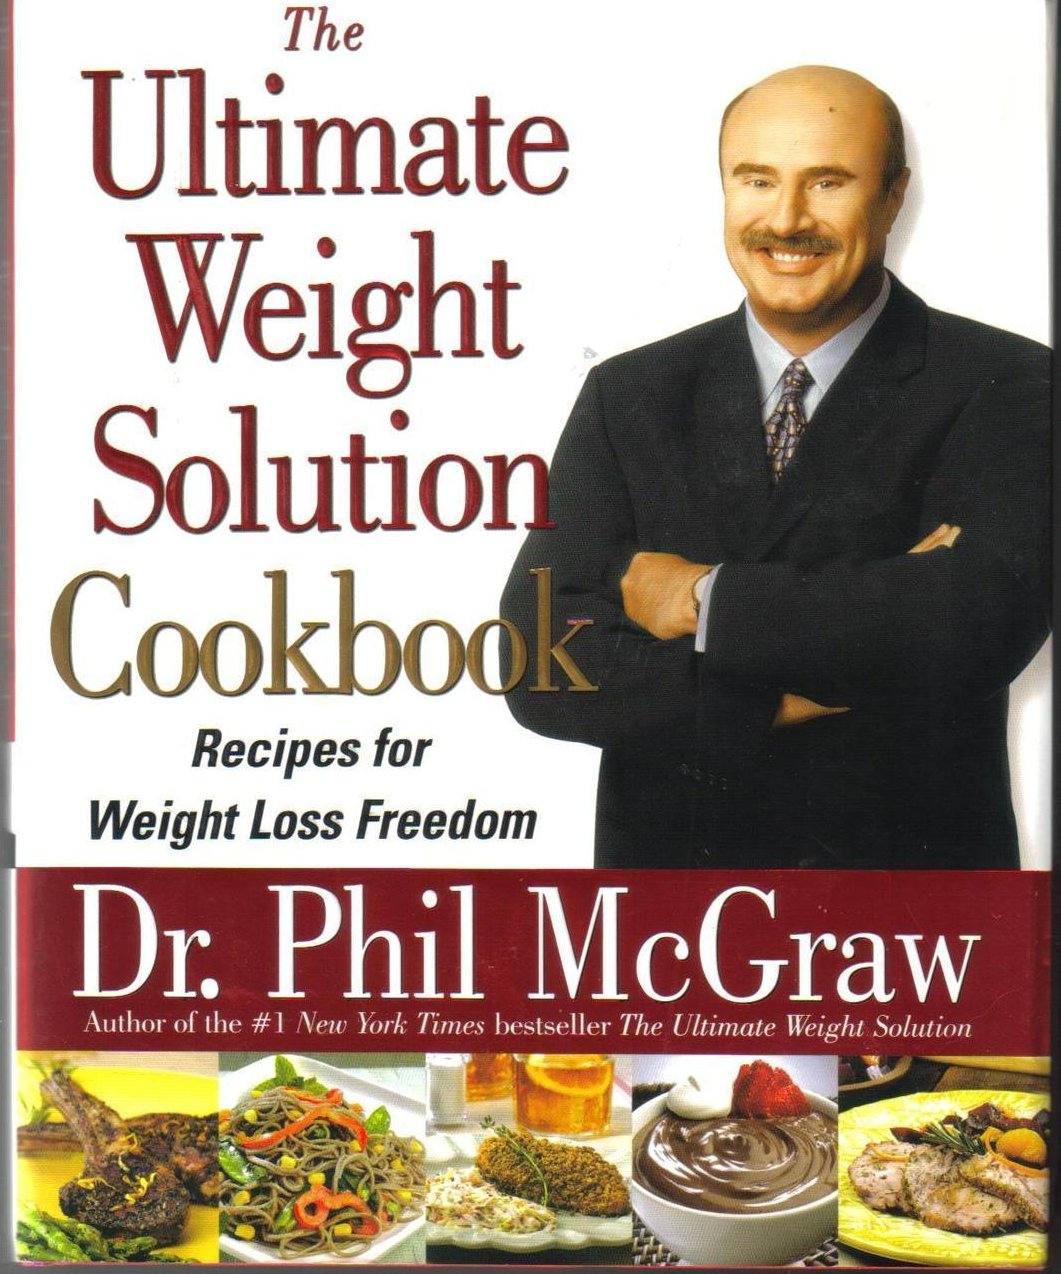 The Ultimate Weight Solution Cookbook by Phil McGraw